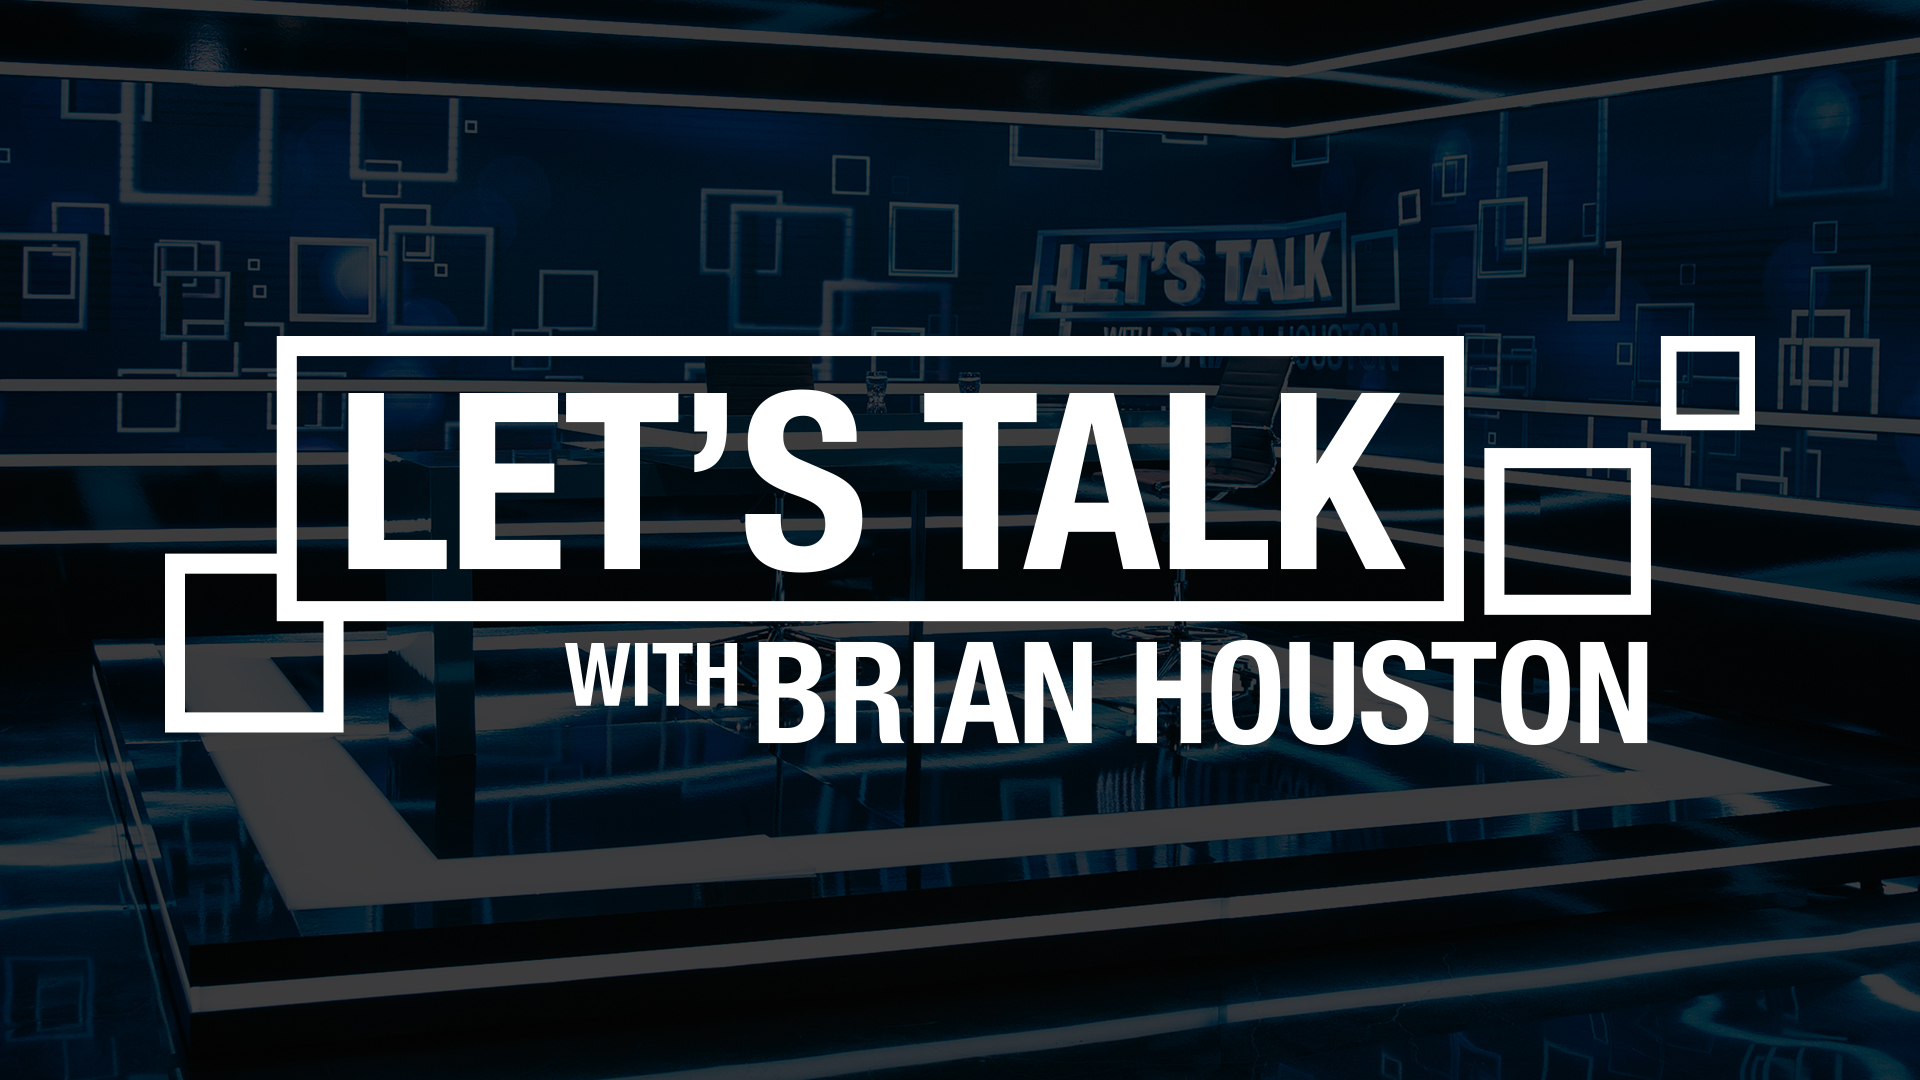 Hillsong Channel | Let's Talk with Brian Houston   On-Set  Live Director | Crane | Camera | BTS